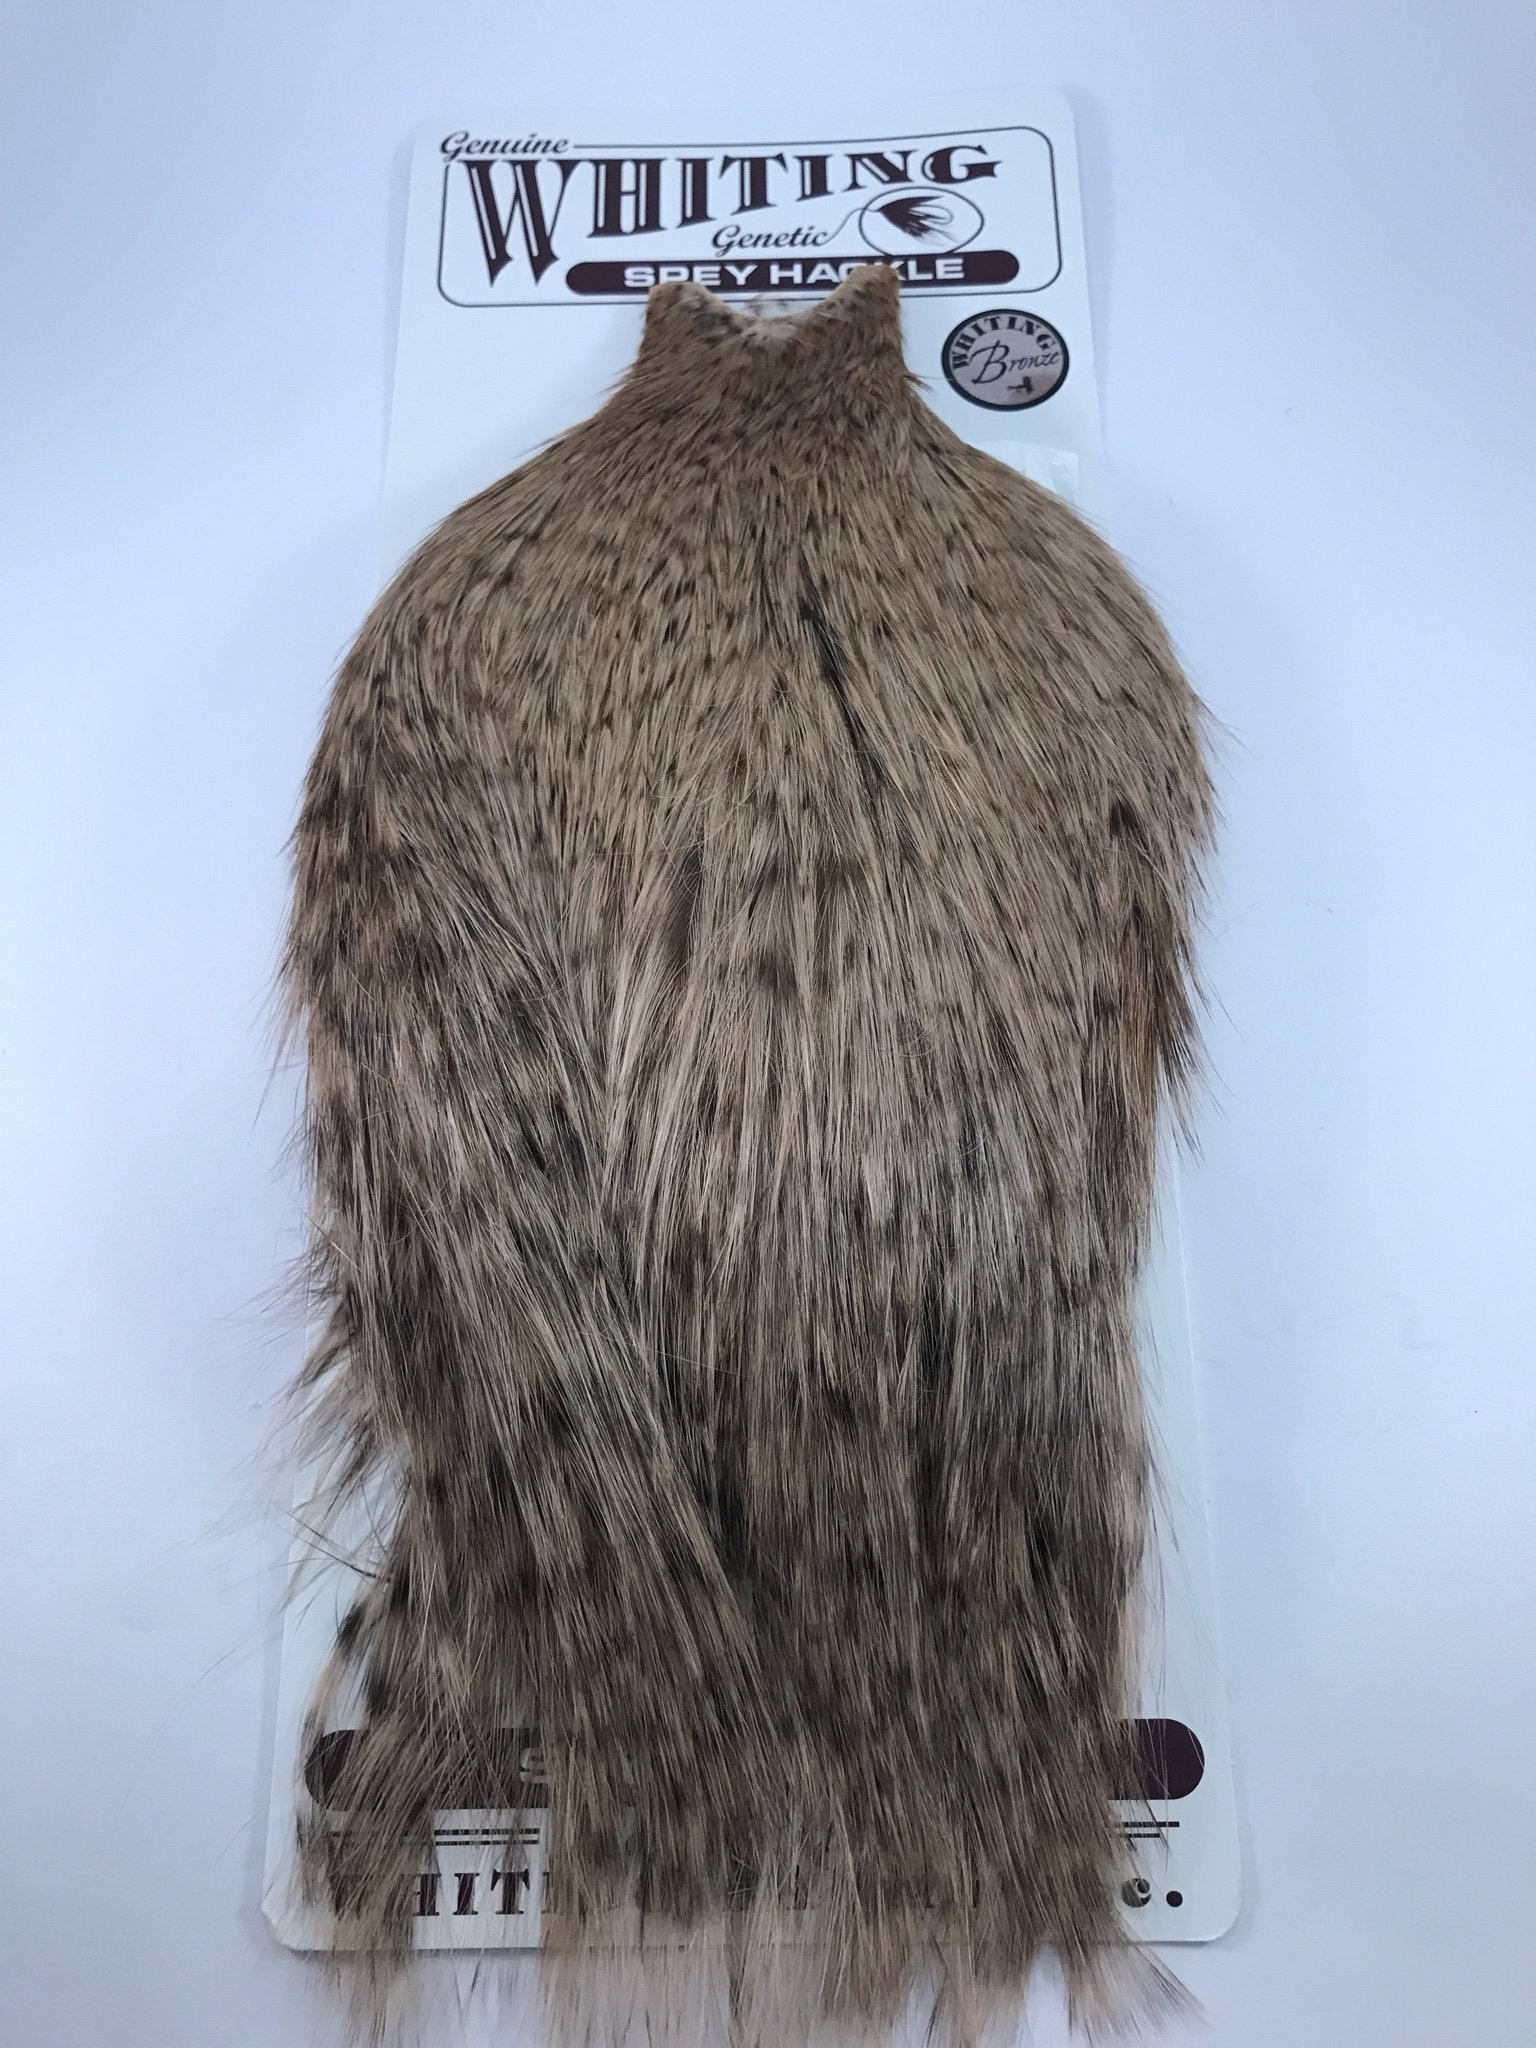 Whiting Spey Cape Bronze Grizzly Dyed Tan (357780540) ᐈ Köp på Tradera